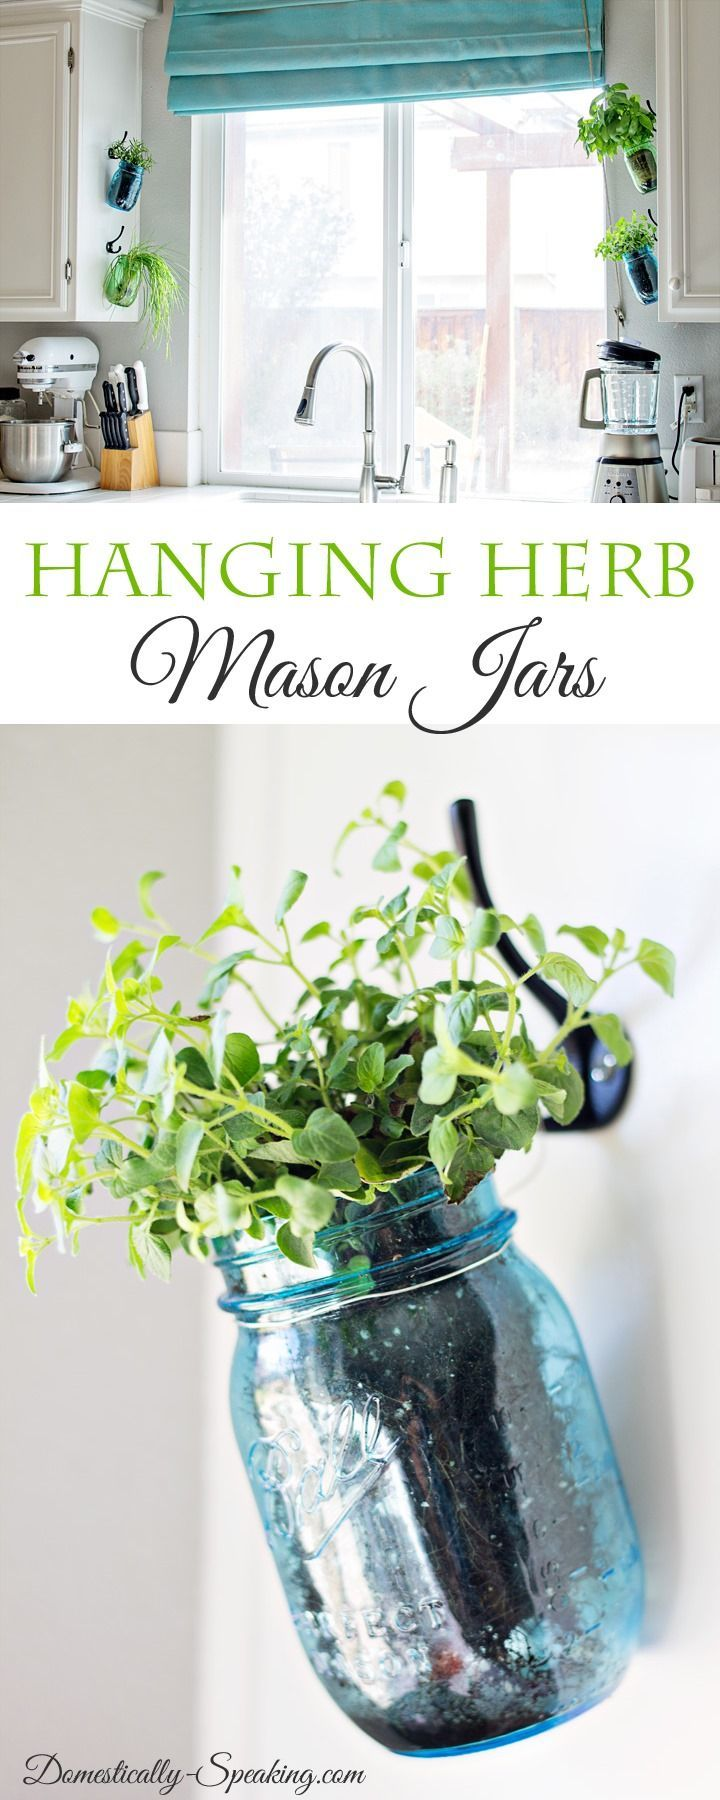 Hanging Fresh Herbs in Mason Jars. Cute idea! From domestically-speaking.com.